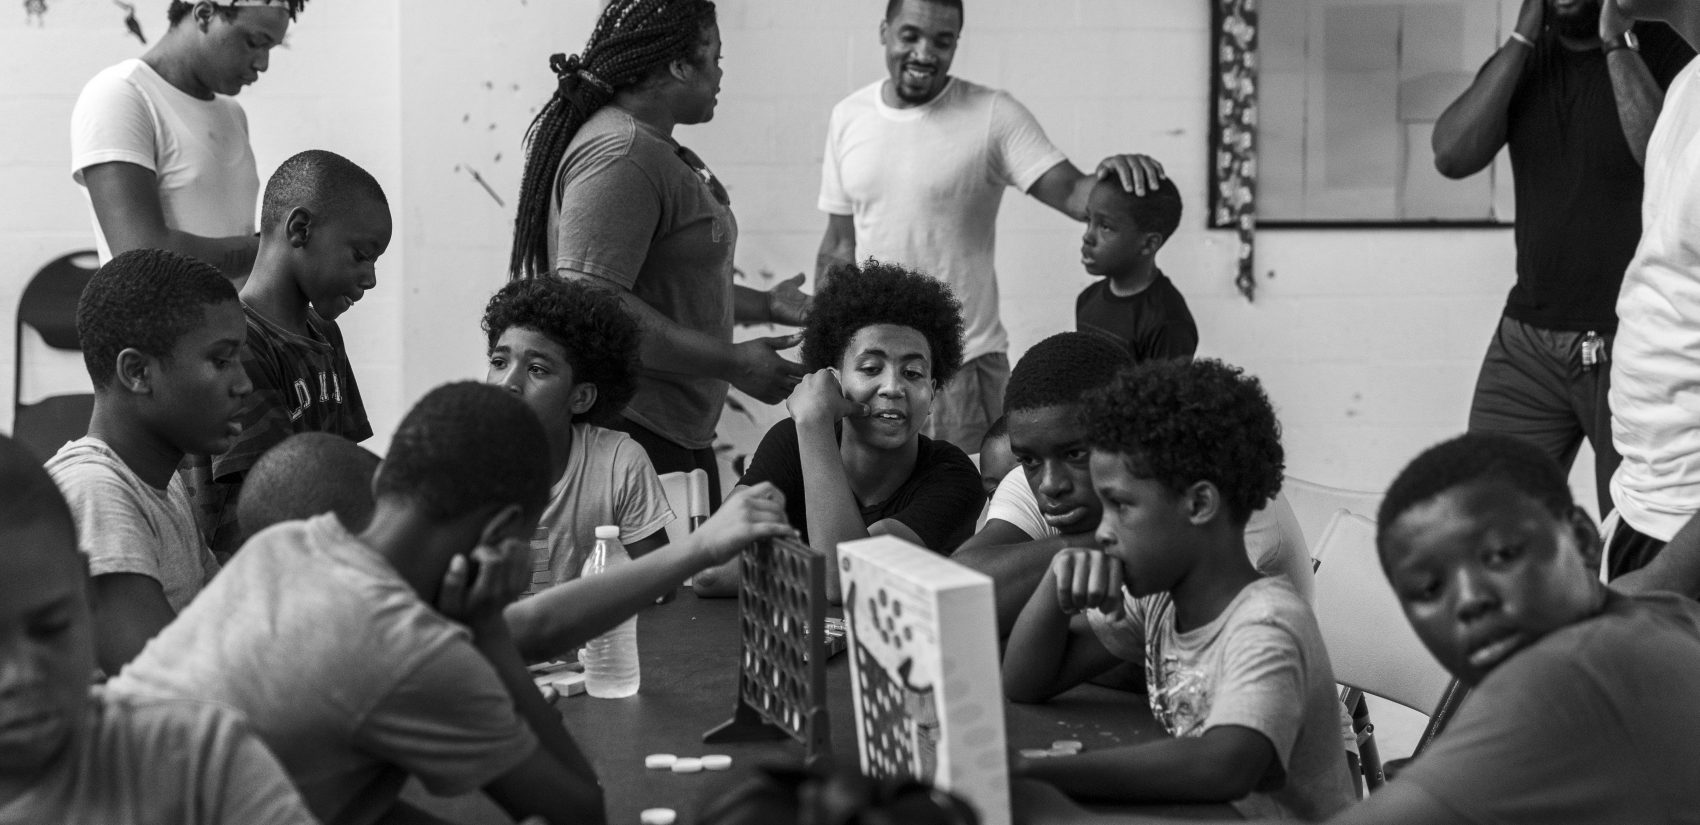 Rahdeem Abdullah (top center) connects with a student in the basement game room at Gathers. Shawn (center) watches younger kids in his role as a counselor in Aunt Cheryl's day camp. (Jessica Kourkounis for Keystone Crossroads)